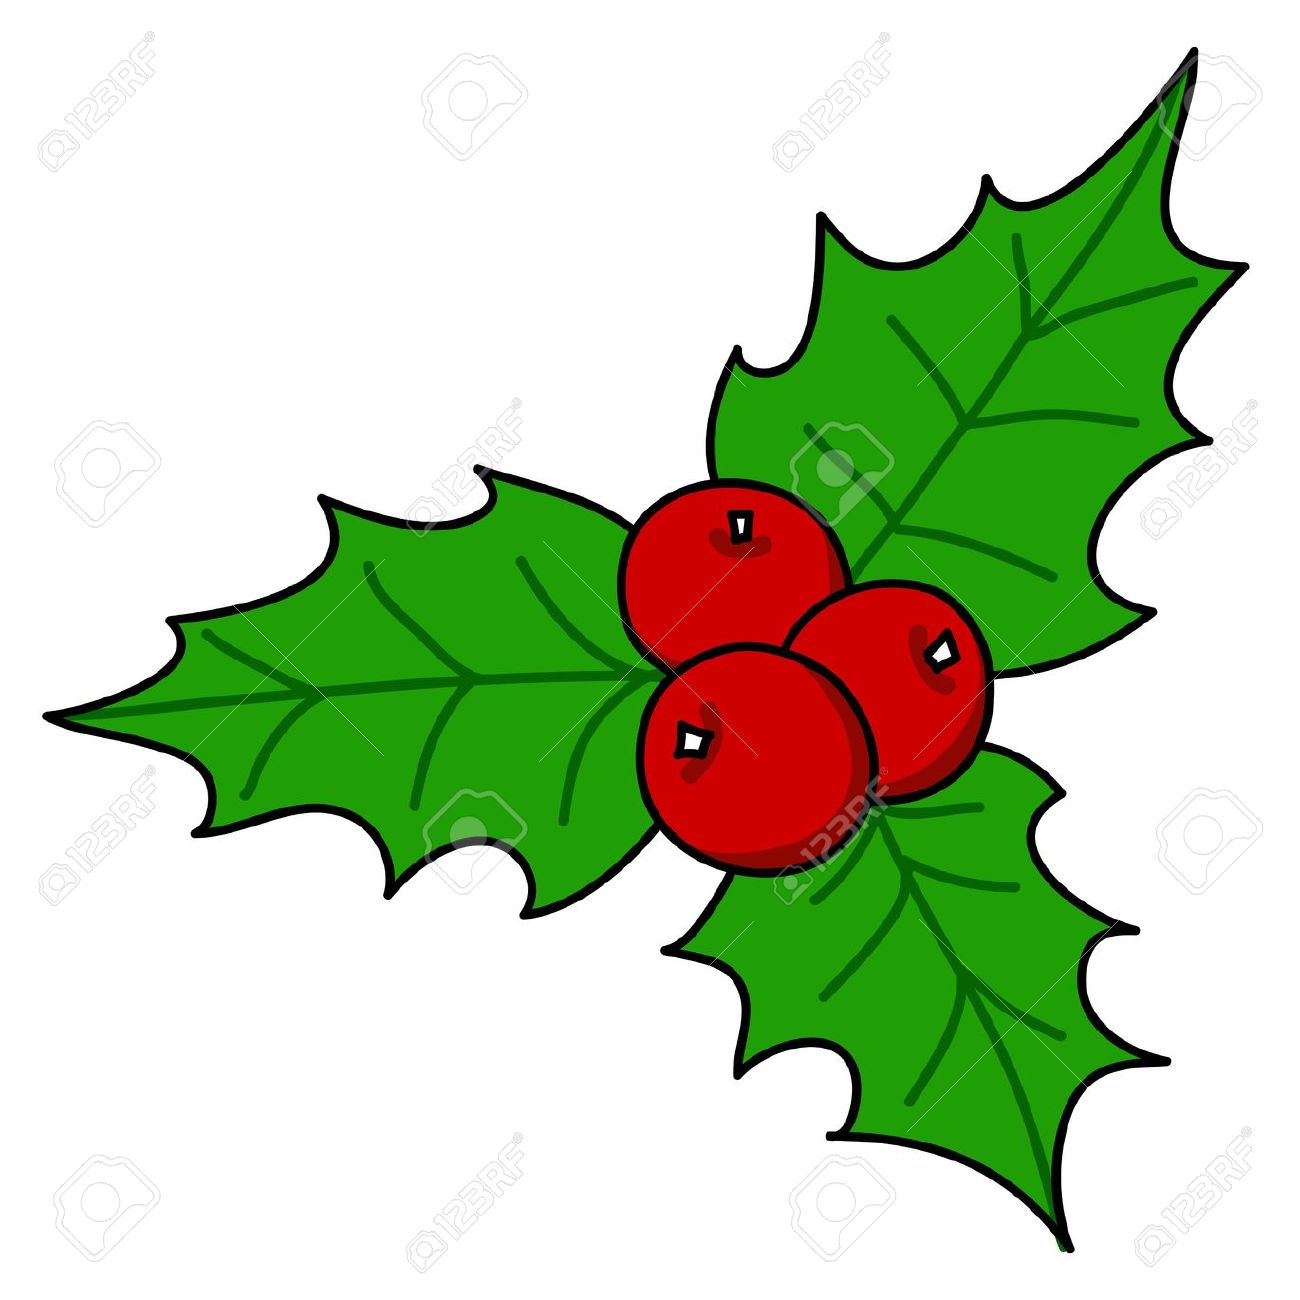 1300x1300 Holly And Ivy Clipart Christmas Holly And Ivy Clipart 20